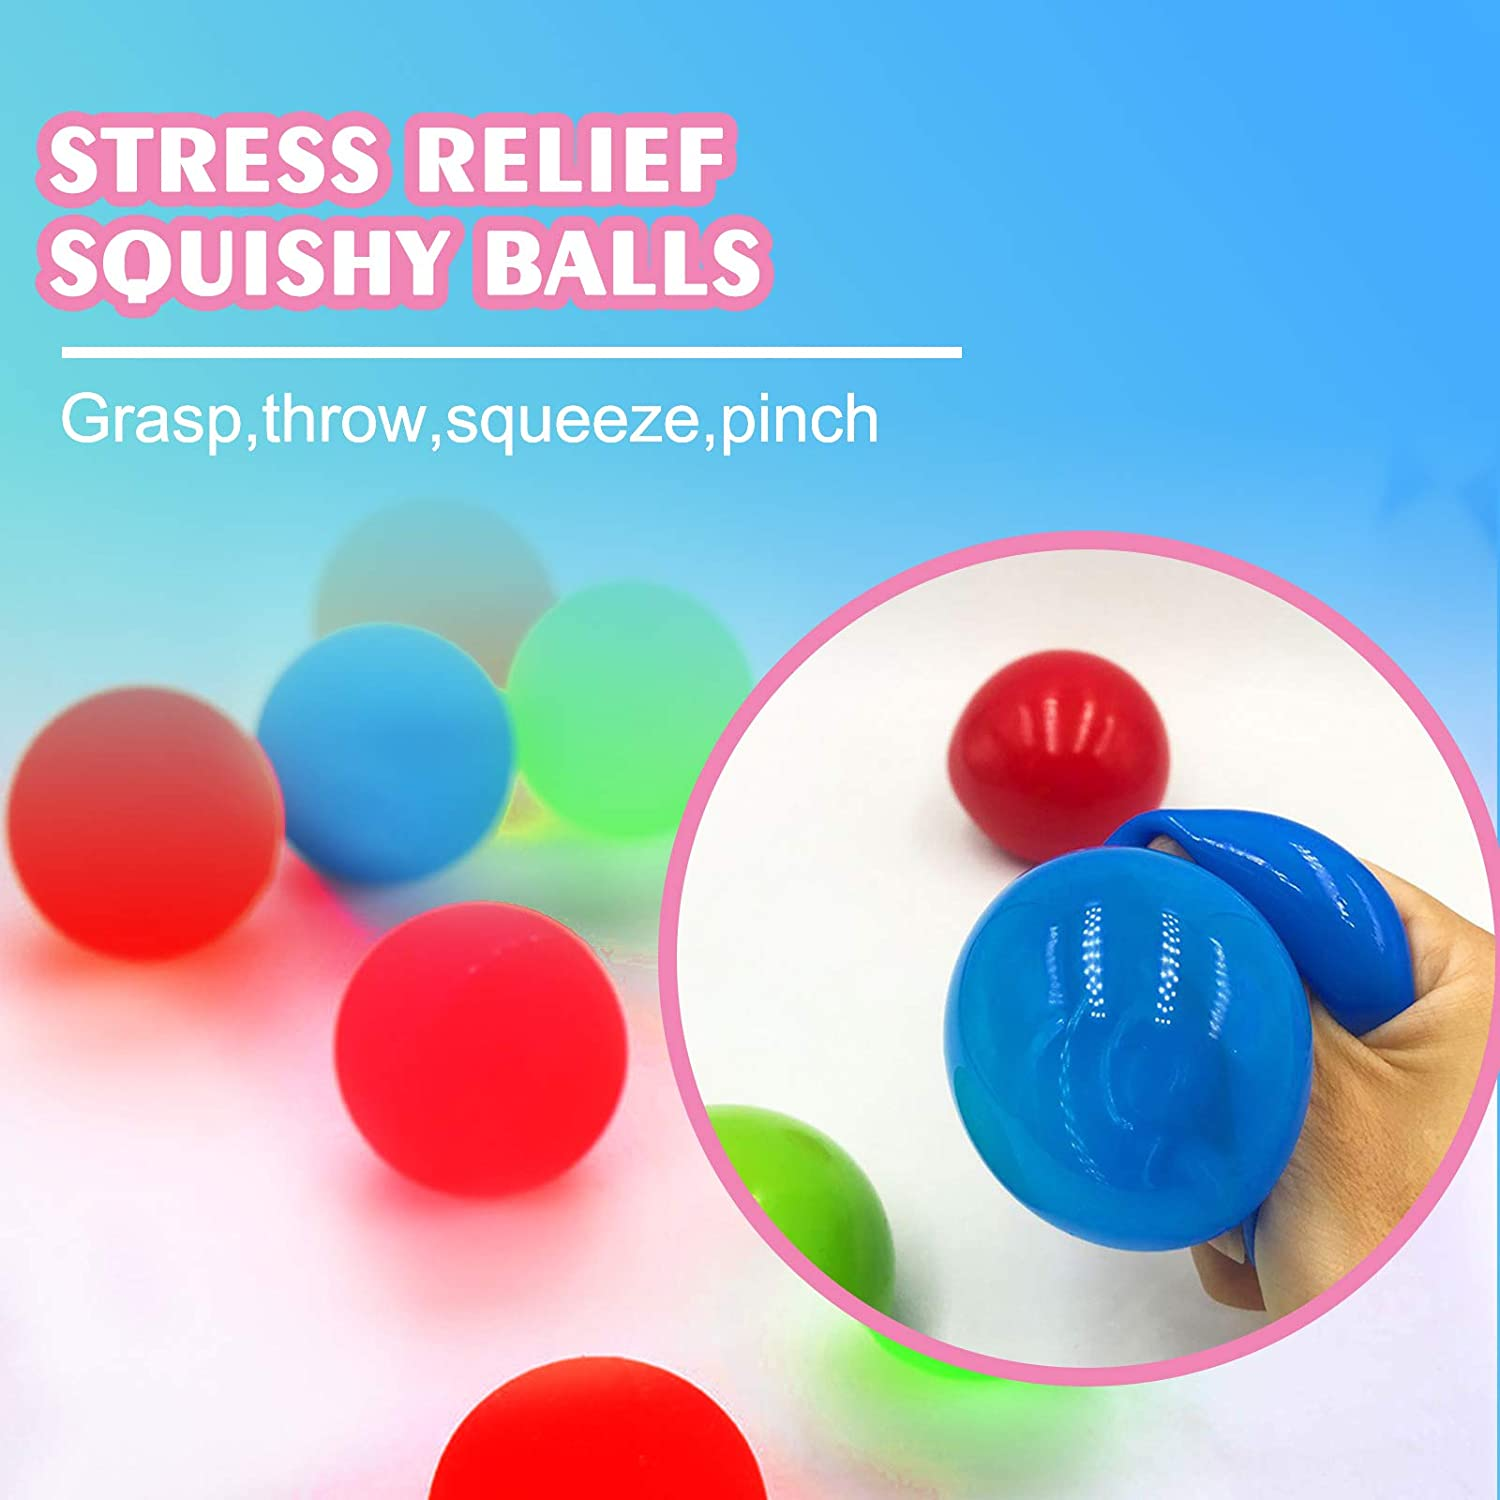 Squeeze Toy for OCD Sticky Balls 4pcs Ceiling Sticky Balls Glow Stress Relief Balls Sticky Wall Balls Squishy Luminescent Stress Relief Toys for Adults Kids Anxiety ADHD